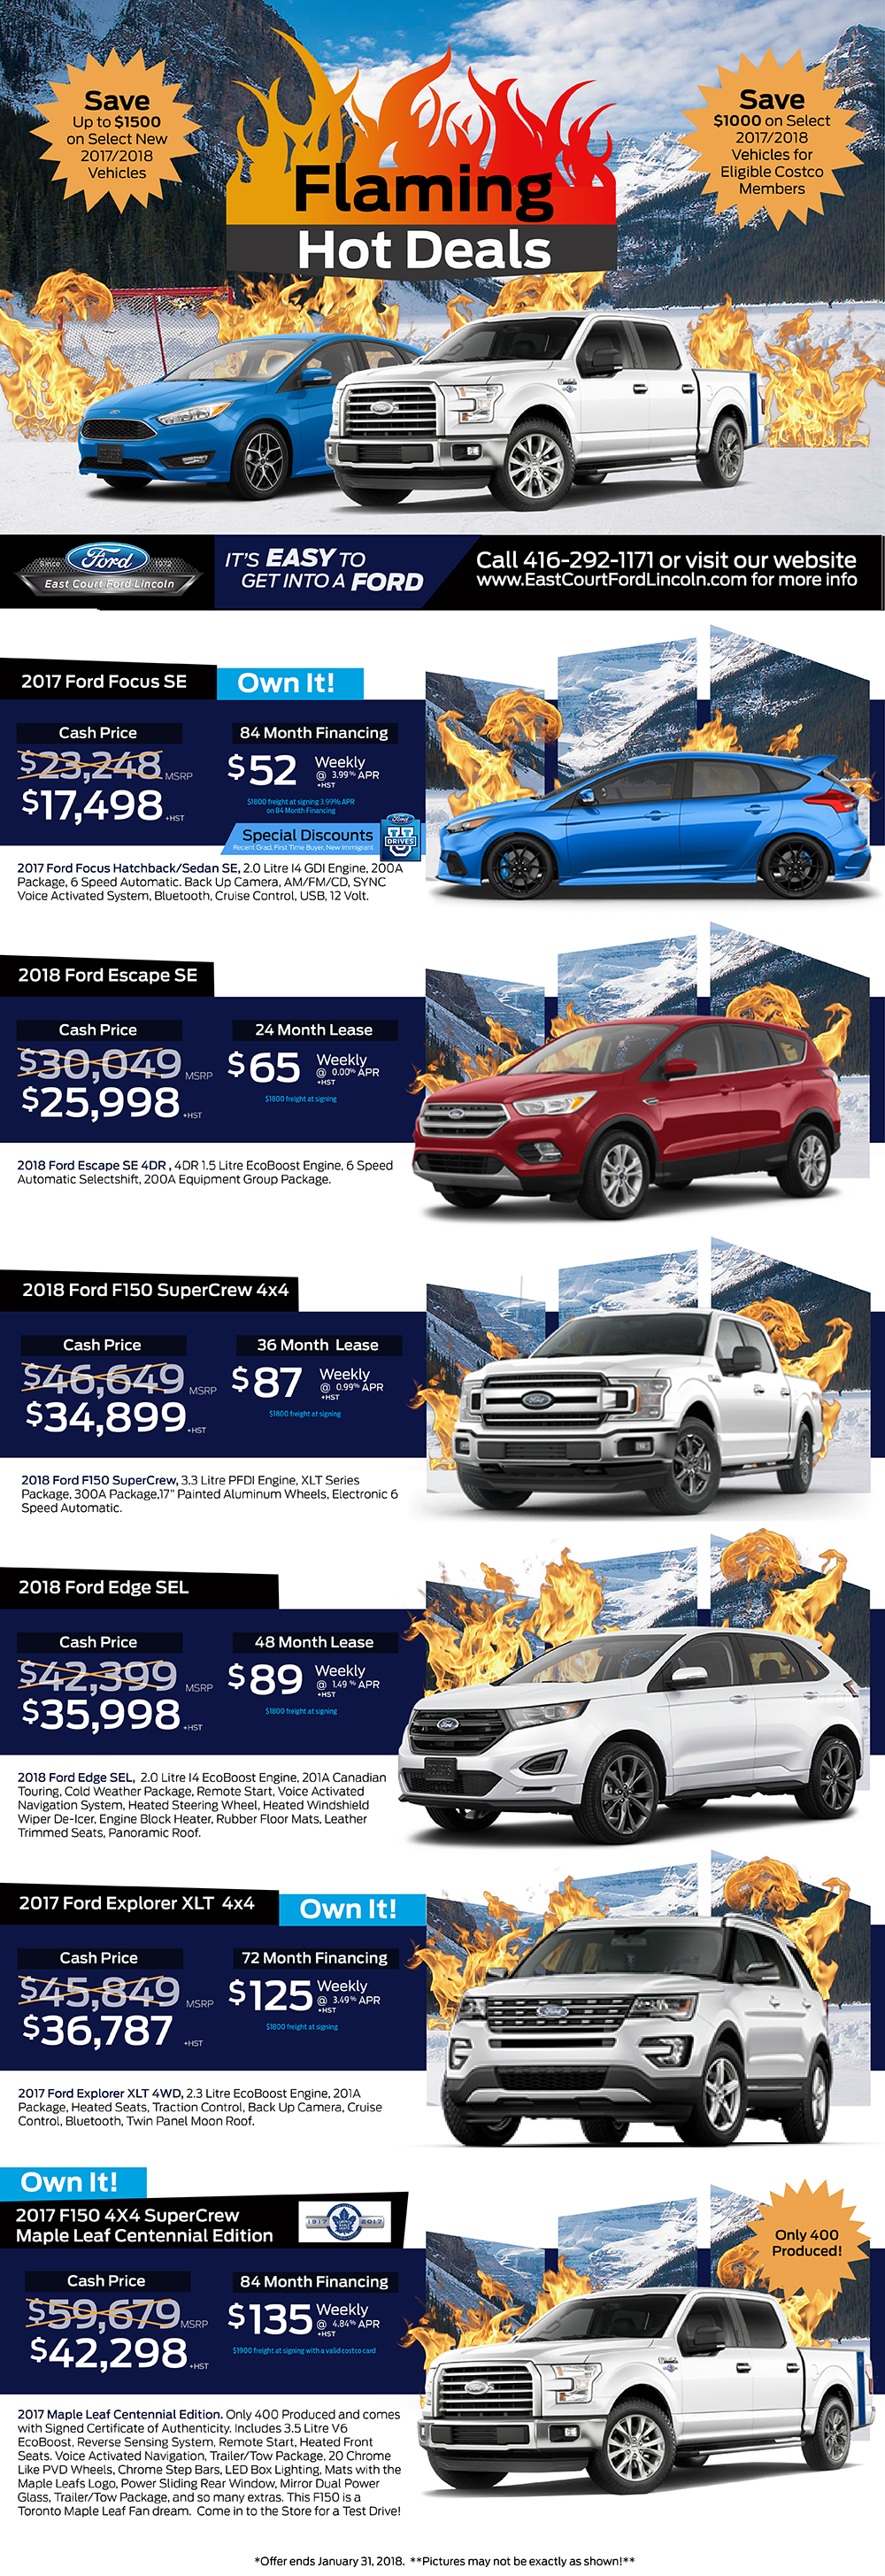 East Court Ford Lincoln Flaming Deals